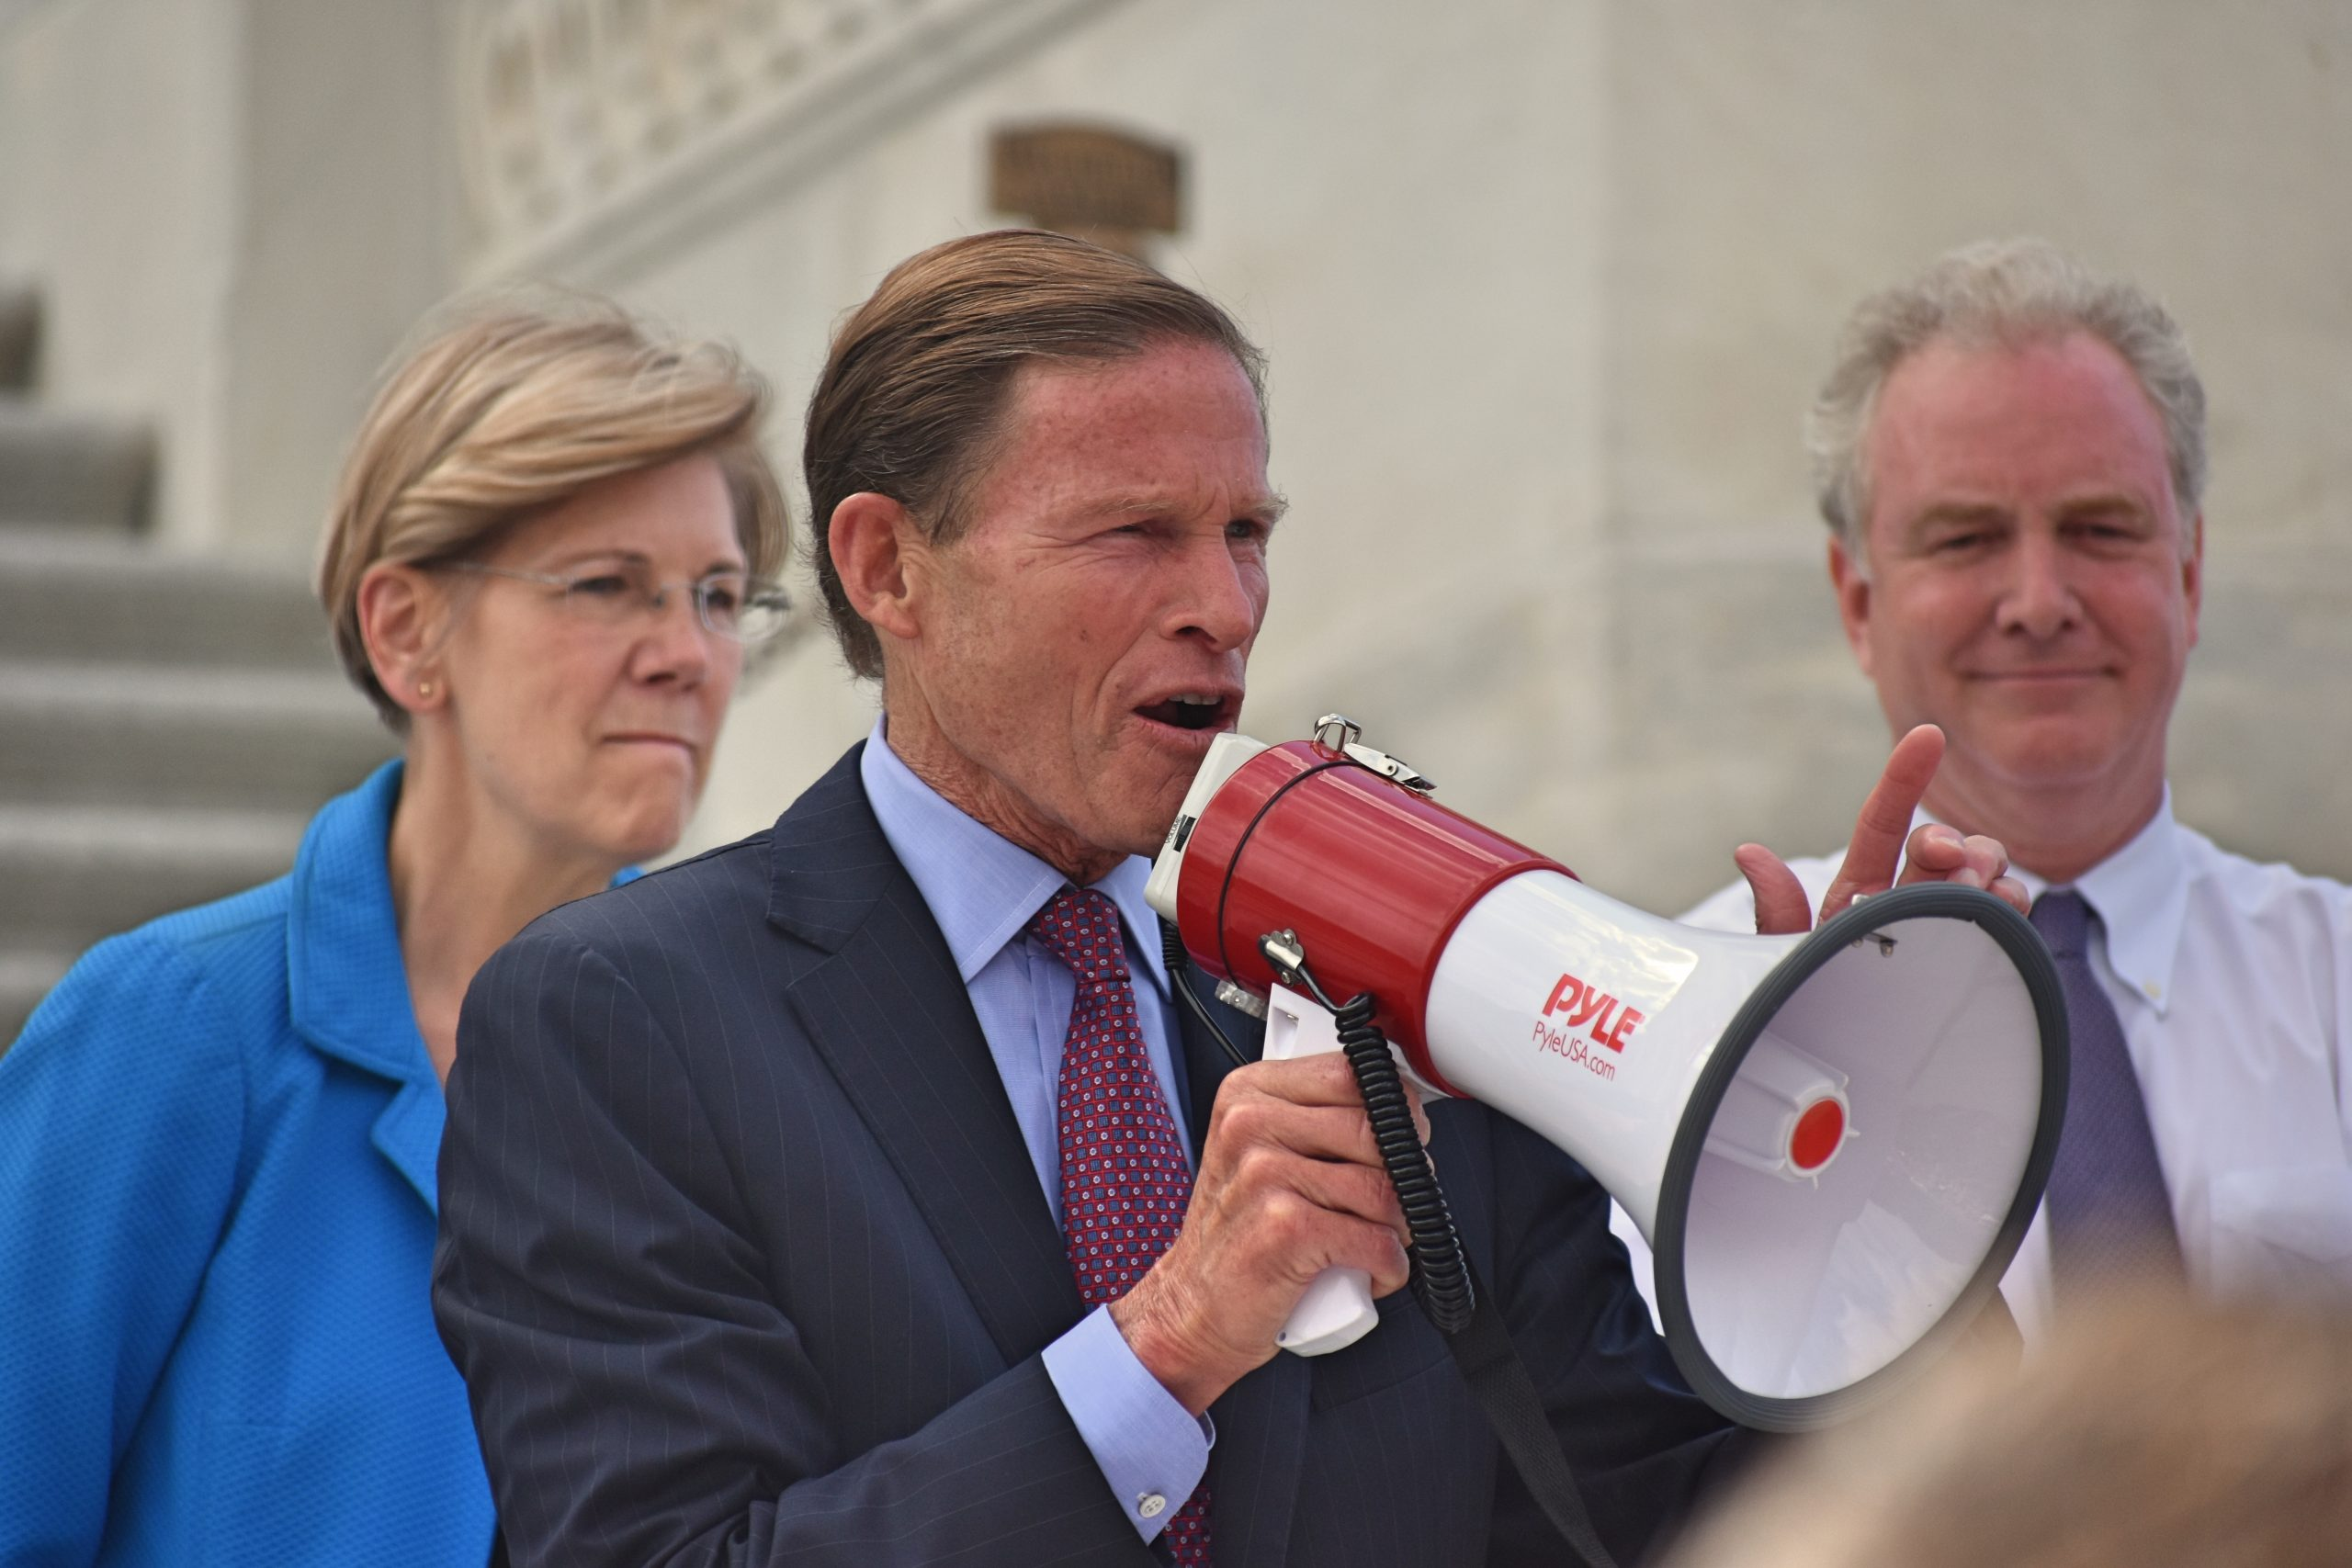 Senator Blumenthal Launches Major Attack on Gun Owners!